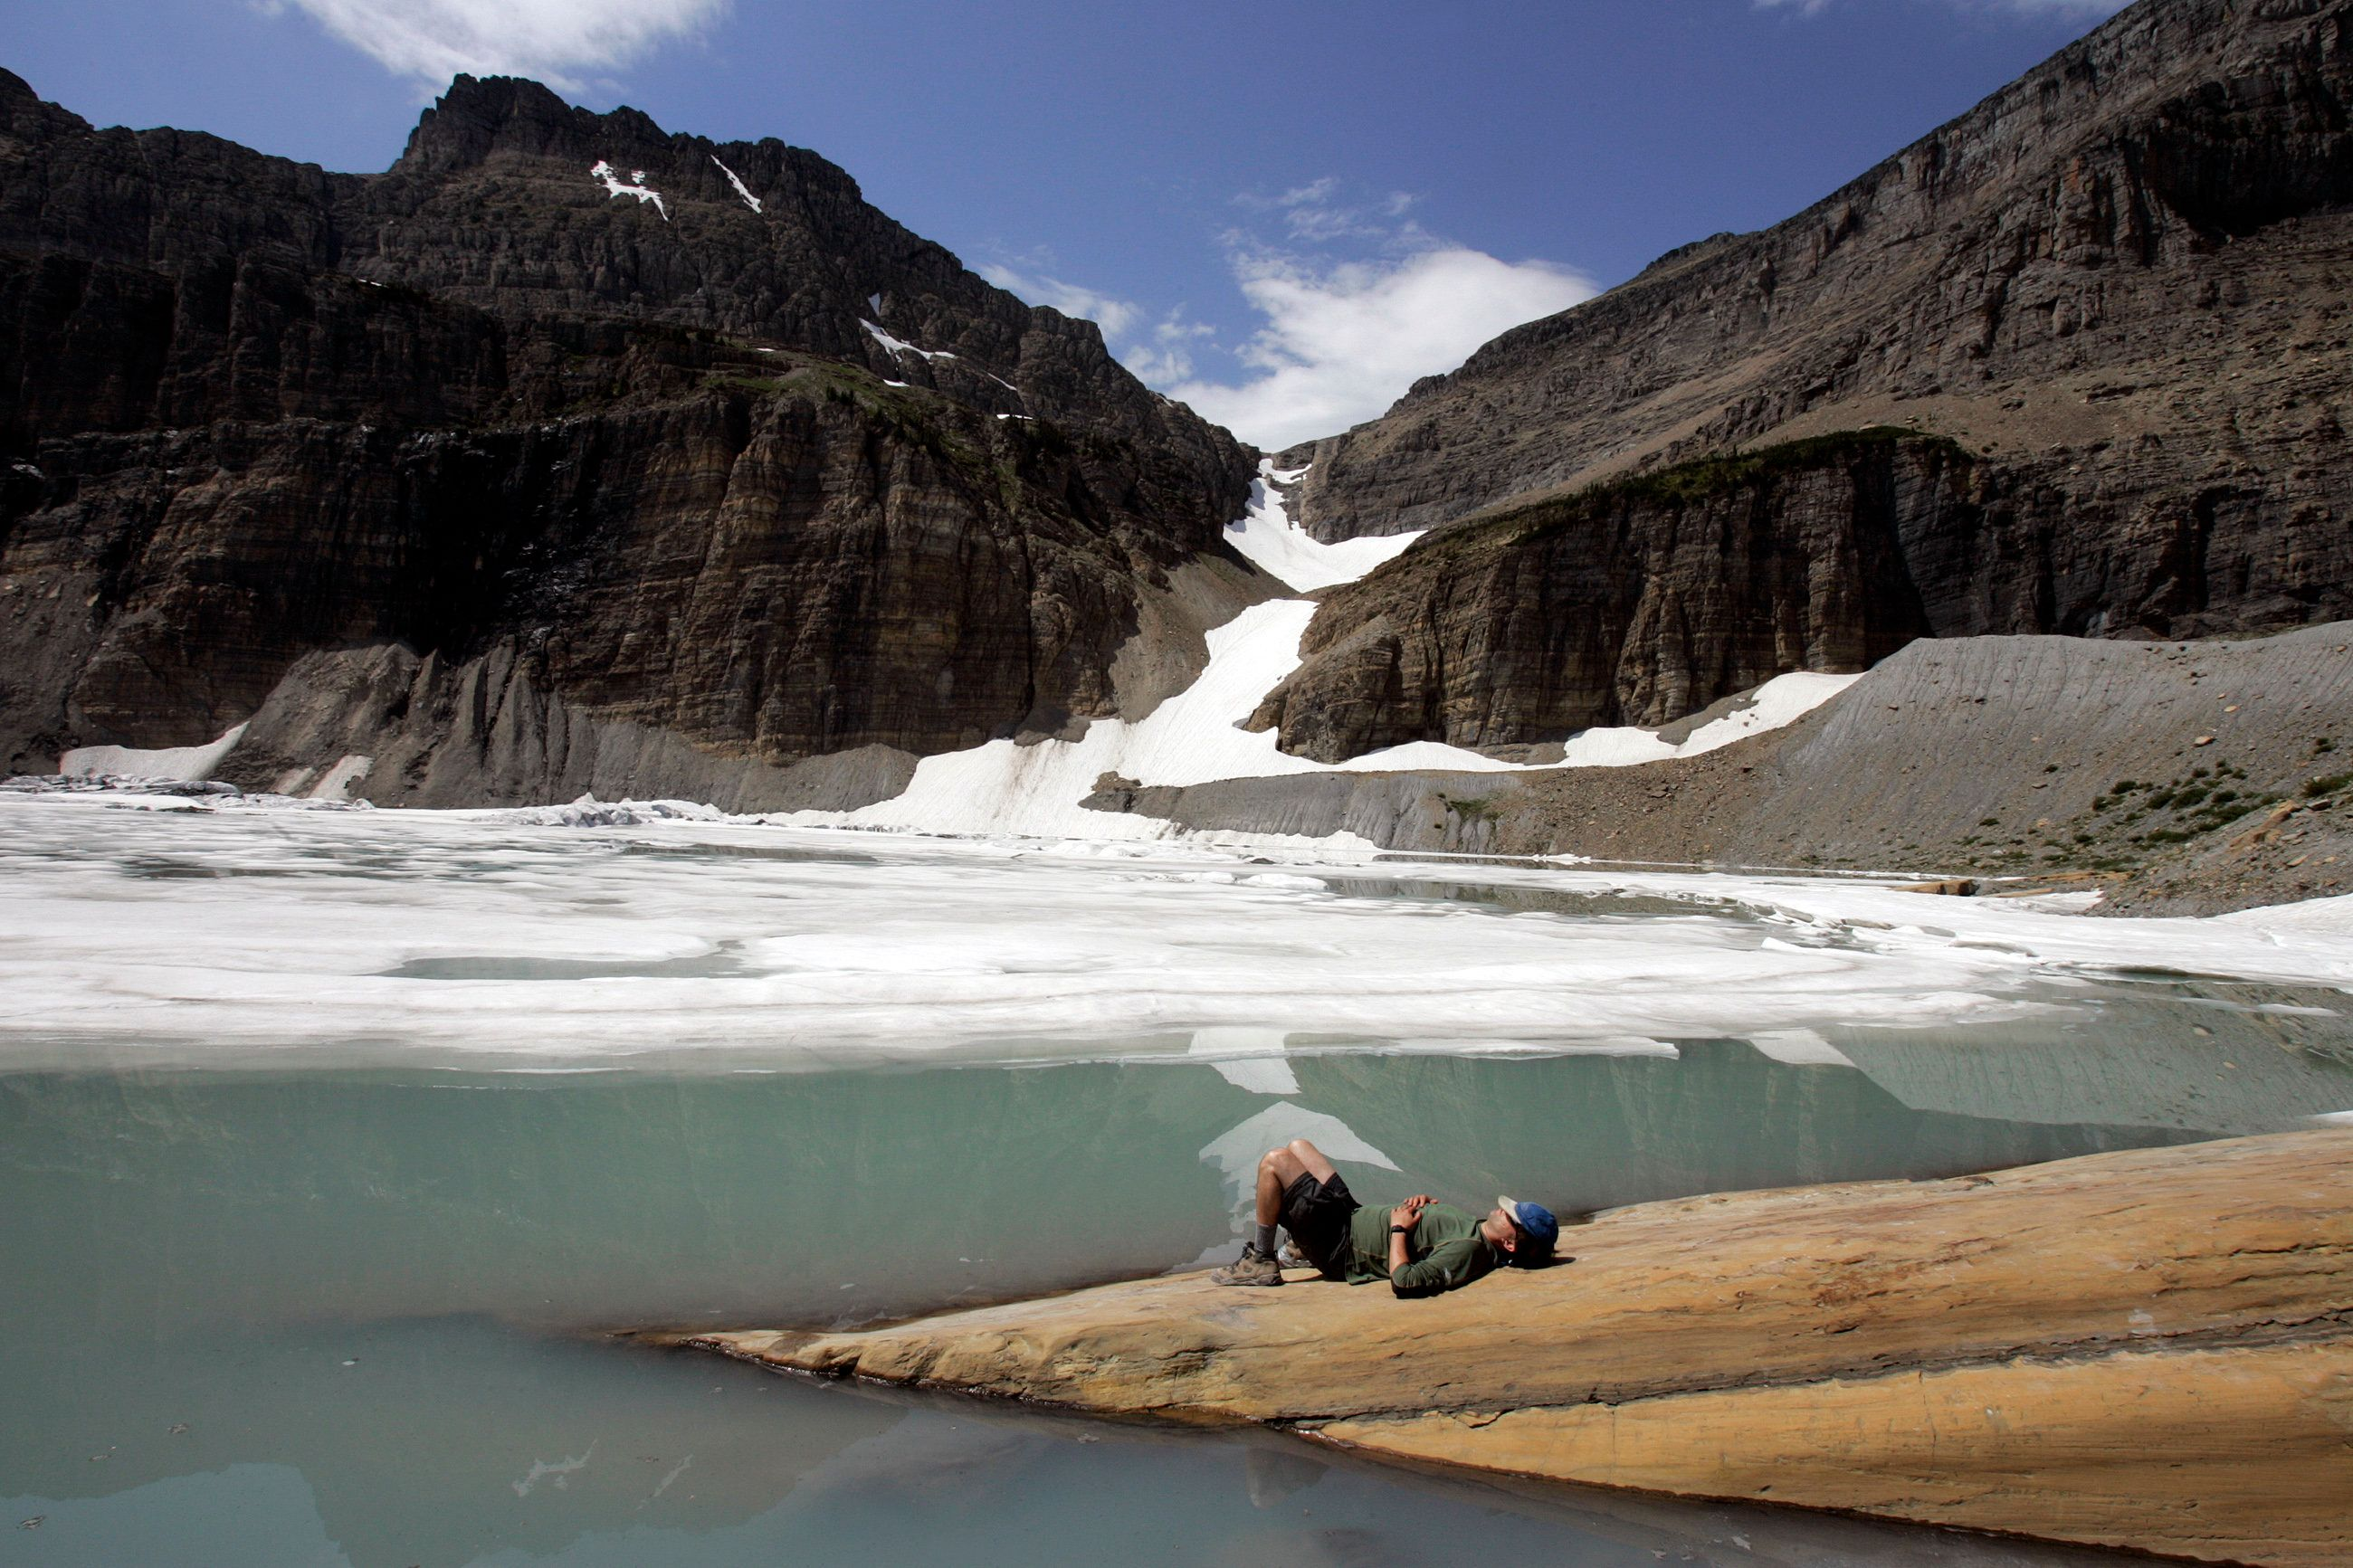 A hiker rests at the edge of the Grinnell Glacier after reaching the top of the Grinnell Glacier Trail at Glacier National Park in Montana. Photos taken in July 2006.  (Photo by Allen J. Schaben/Los Angeles Times via Getty Images)